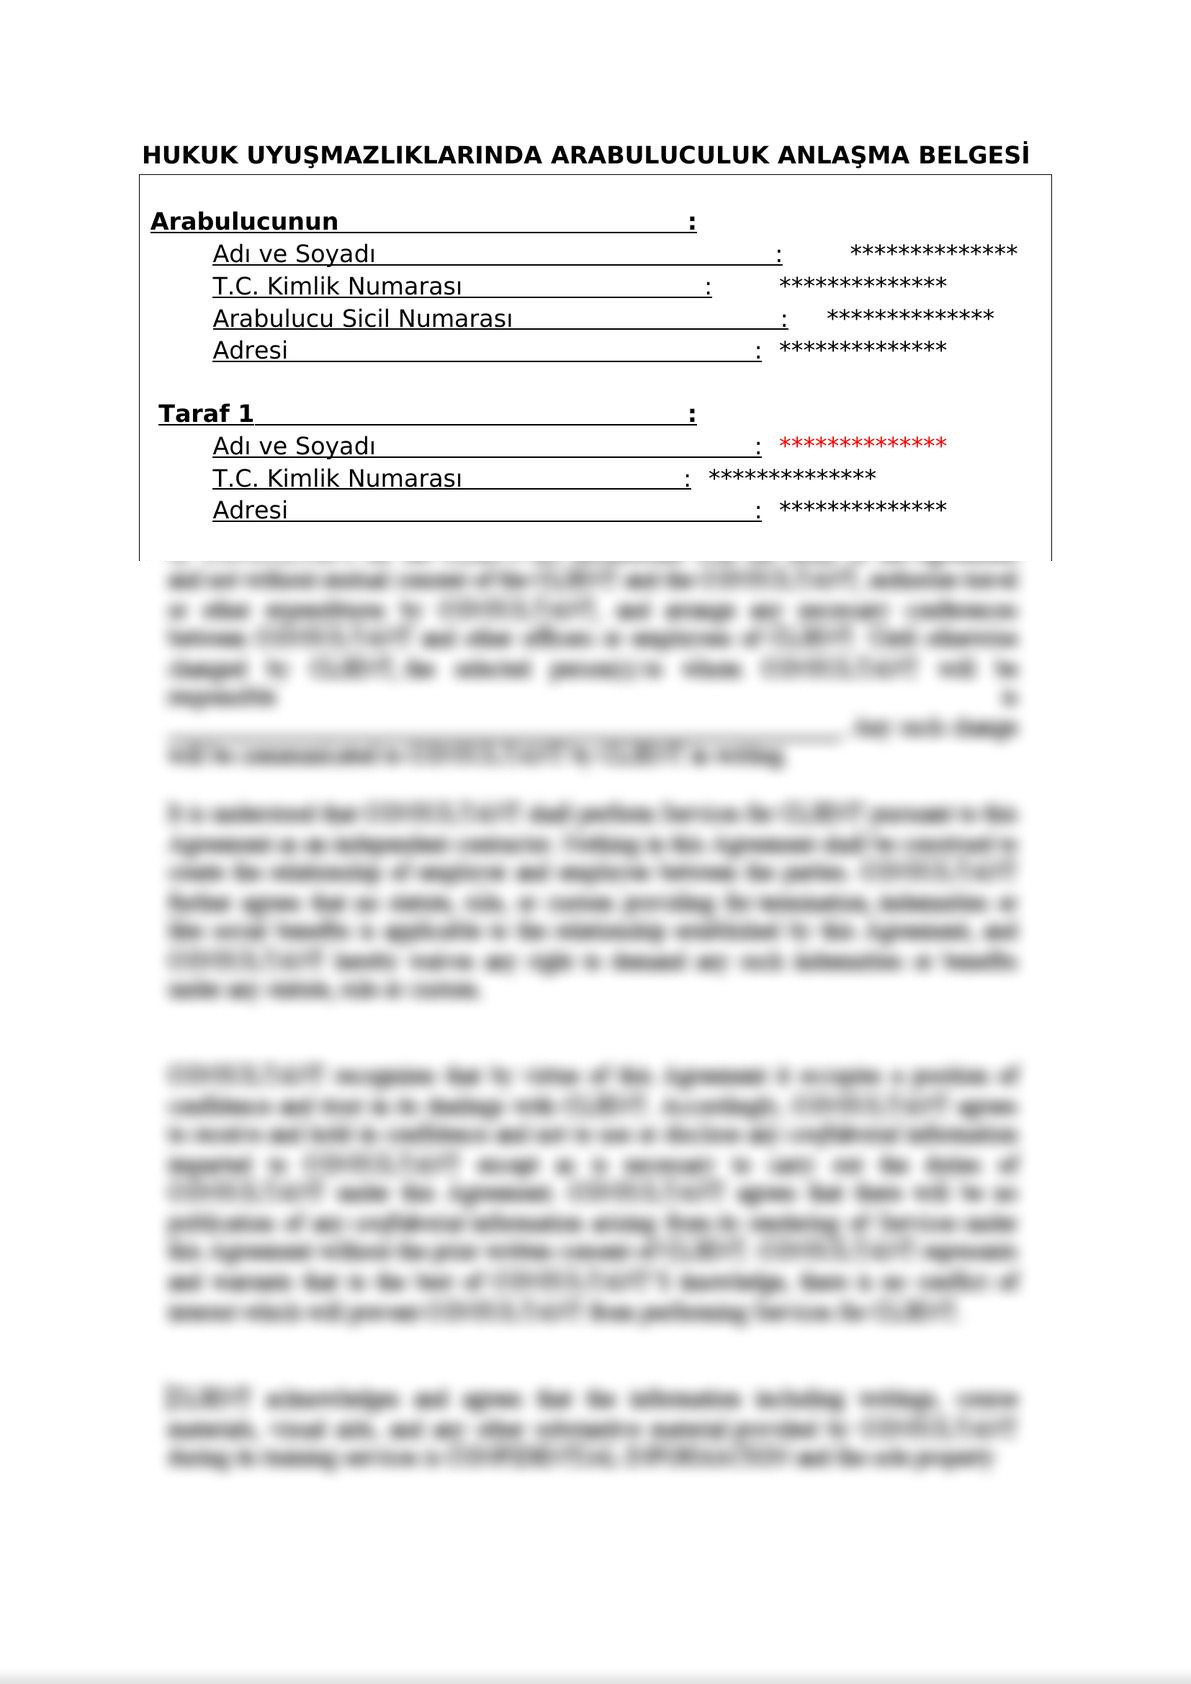 Mediation Settlement Agreement  on Commercial Disputes - Turkish-0